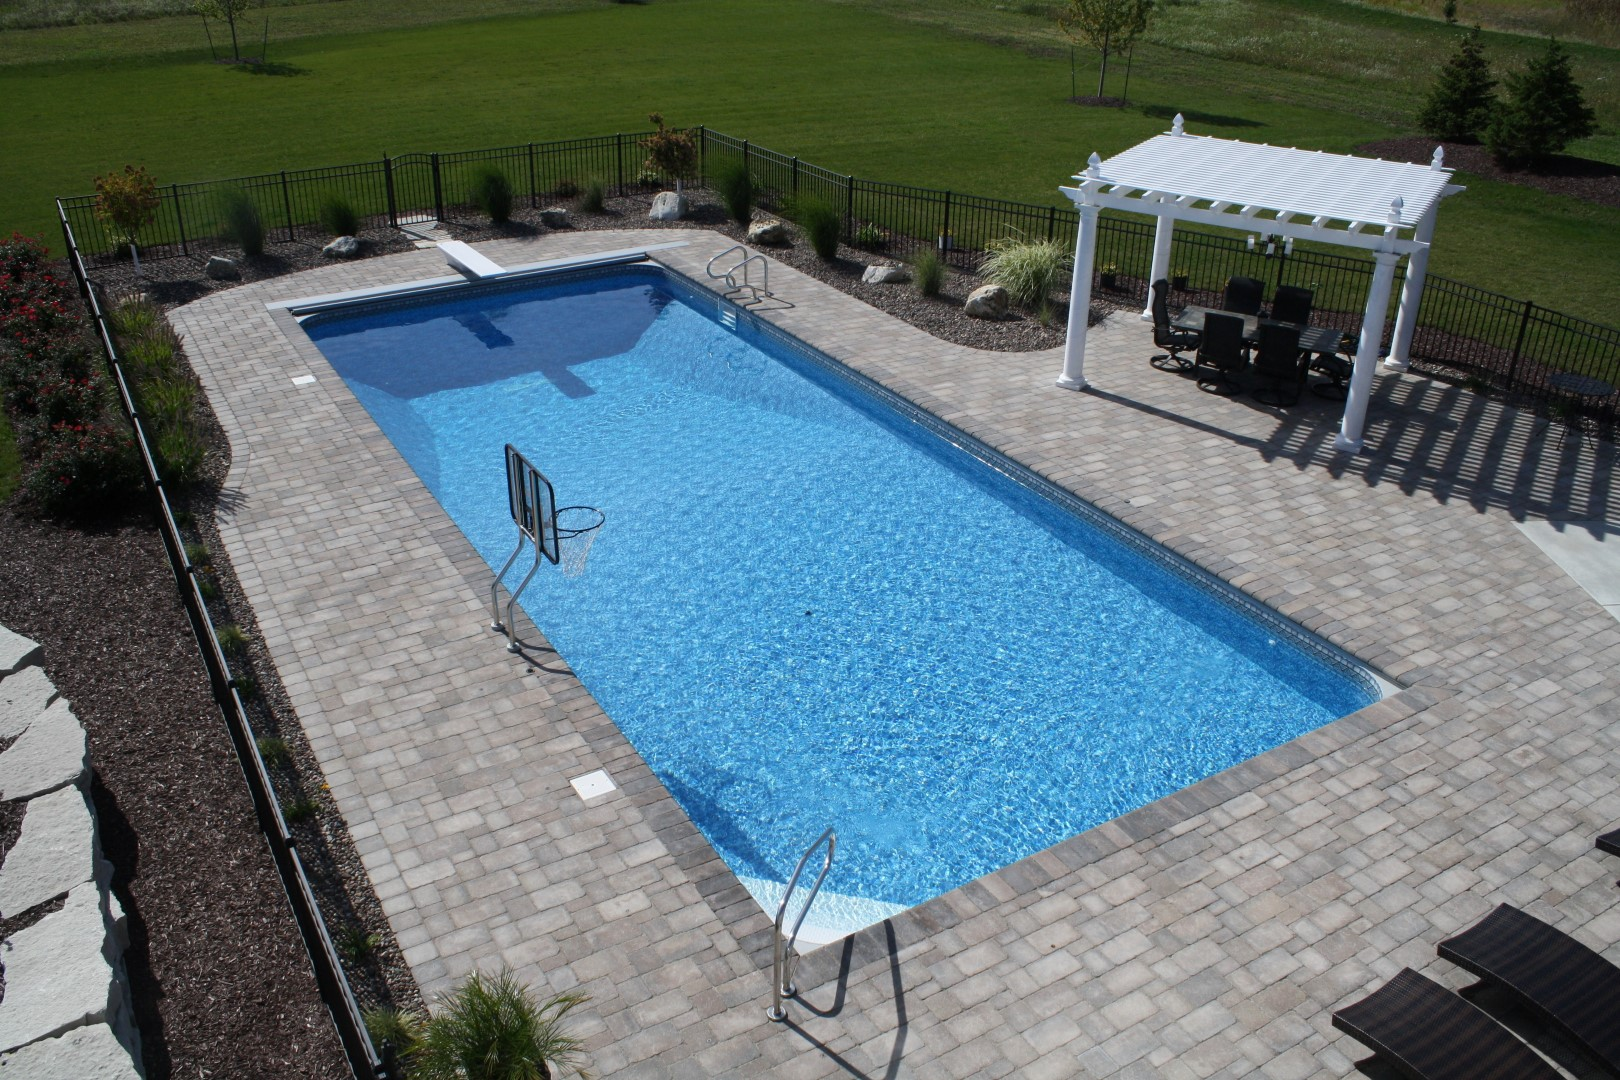 Swimming Pool Landscaping : Completed inground swimming pools landscaping